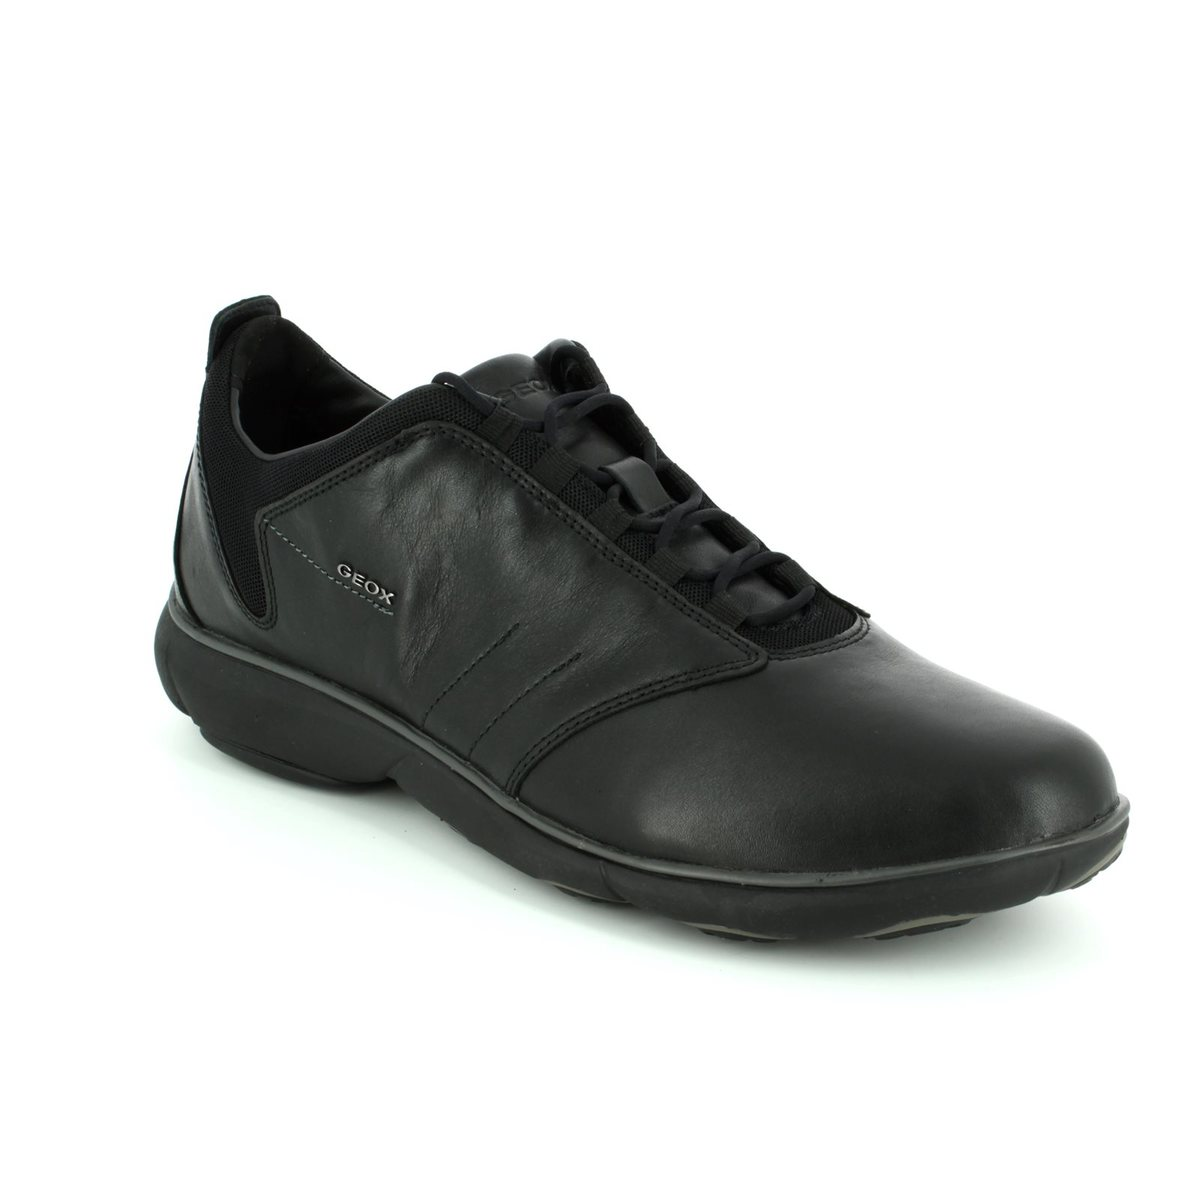 fbf84b02cac Geox Casual Shoes - Black - U52D7A C9999 NEBULA MEN